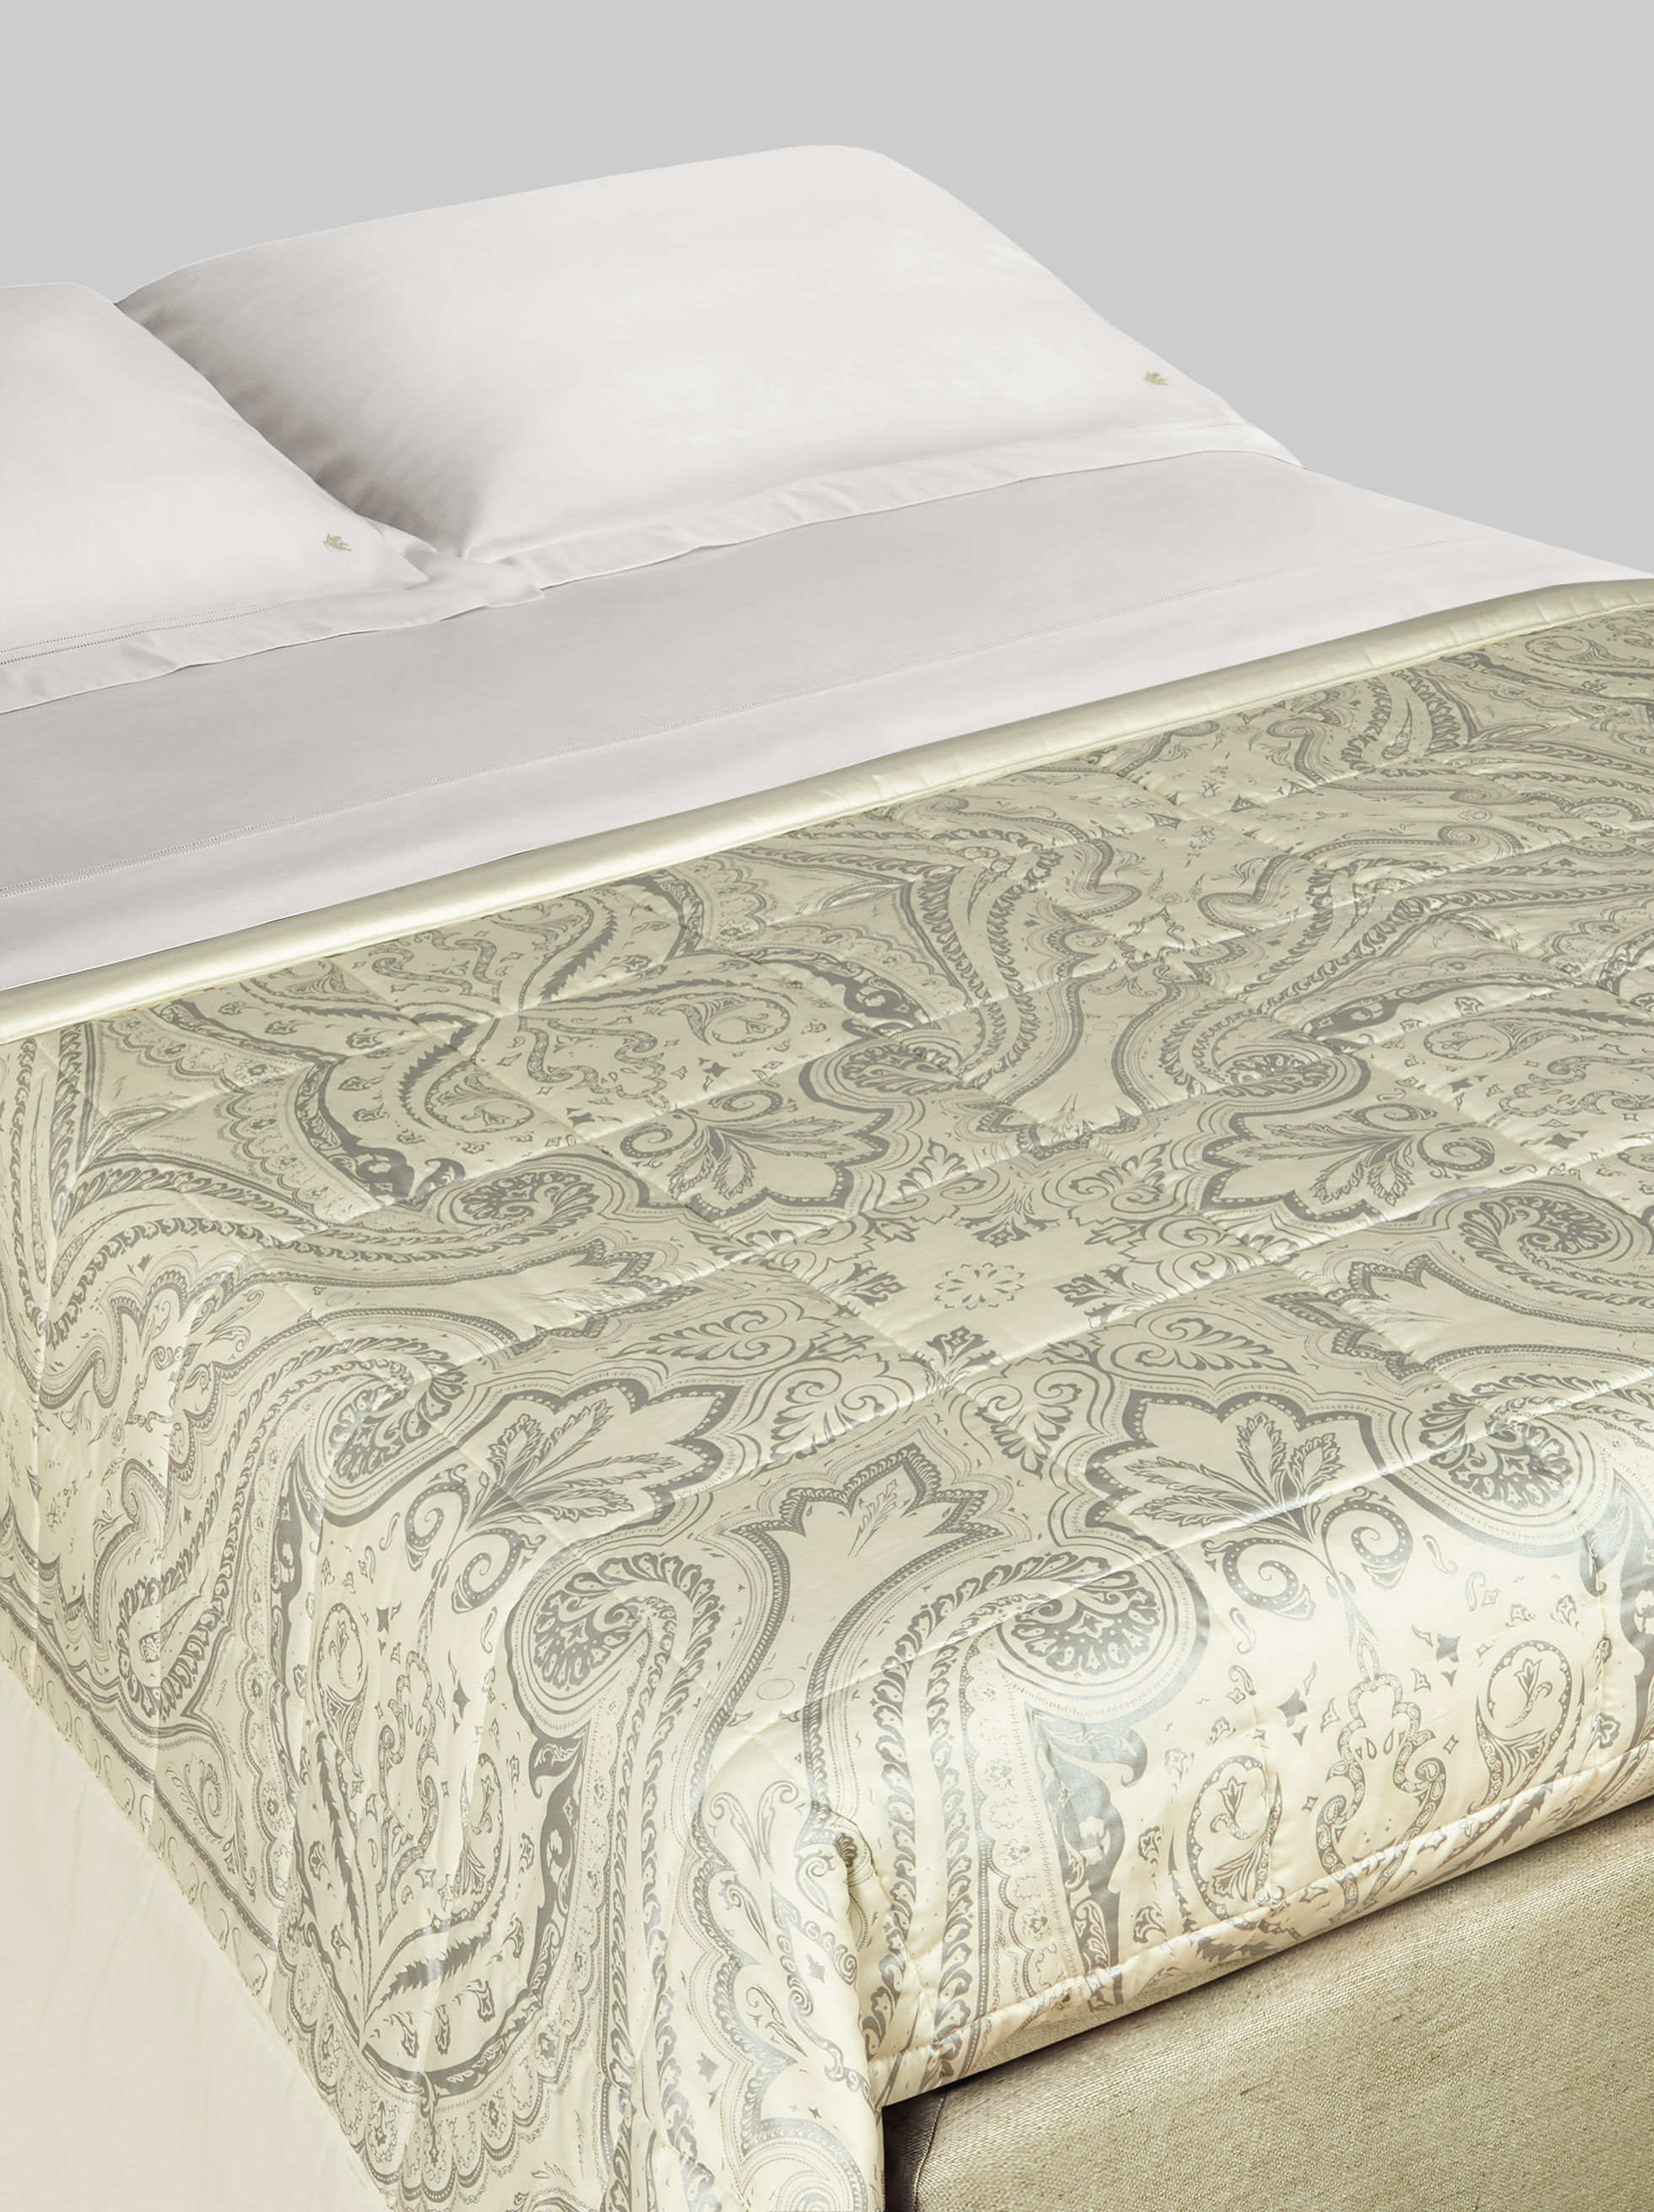 SATIN QUILT WITH PAISLEY DESIGNS